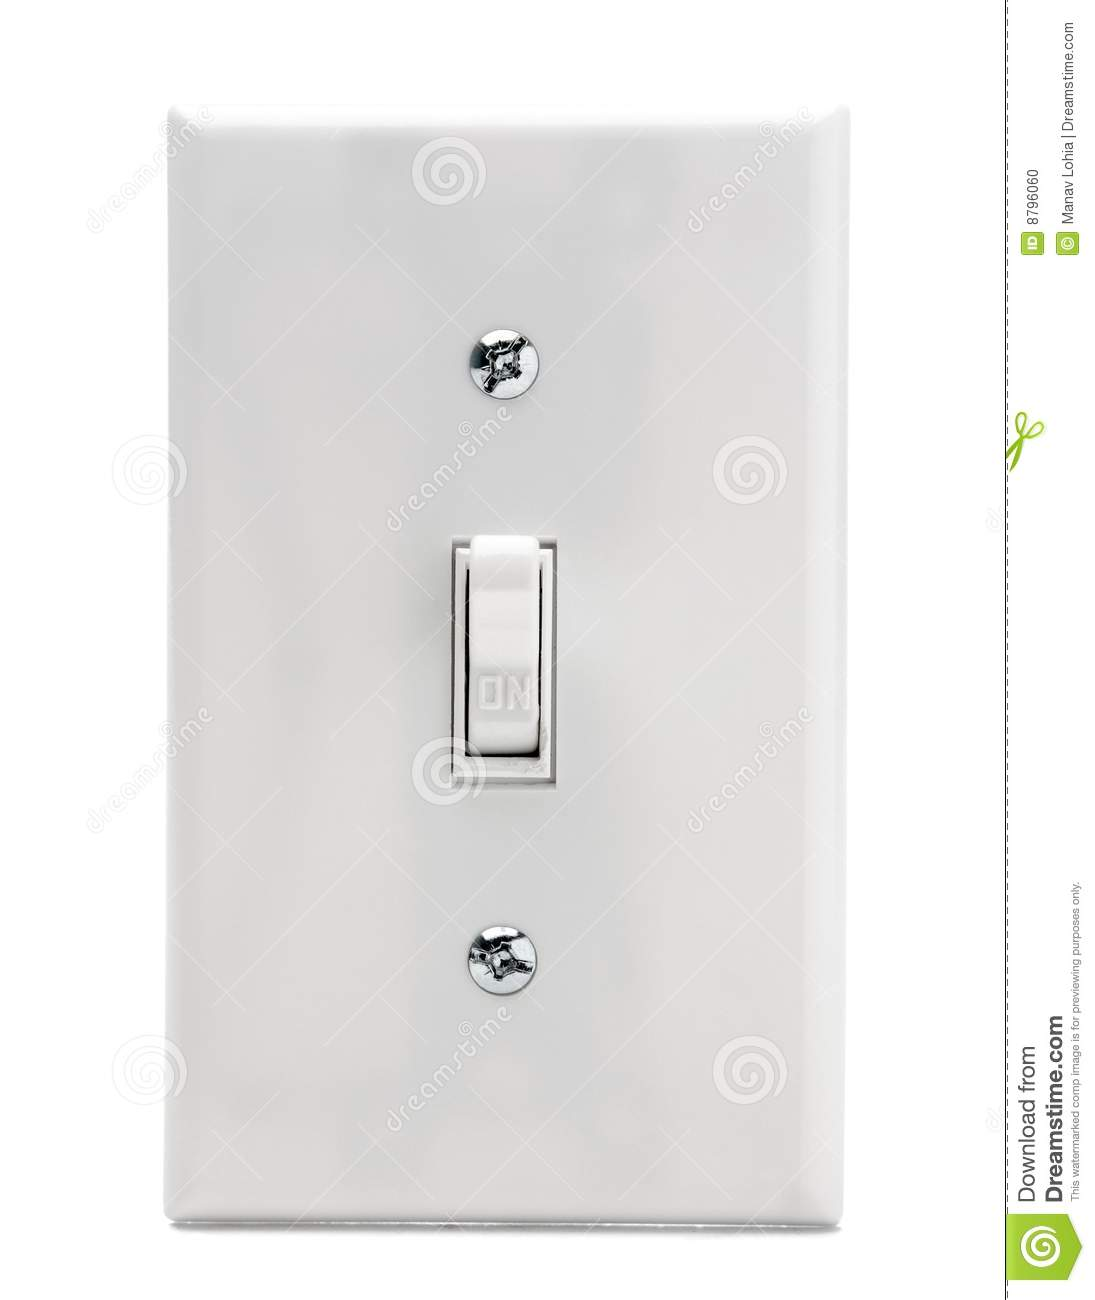 Electric Switch stock photo. Image of switch, isolated - 8796060